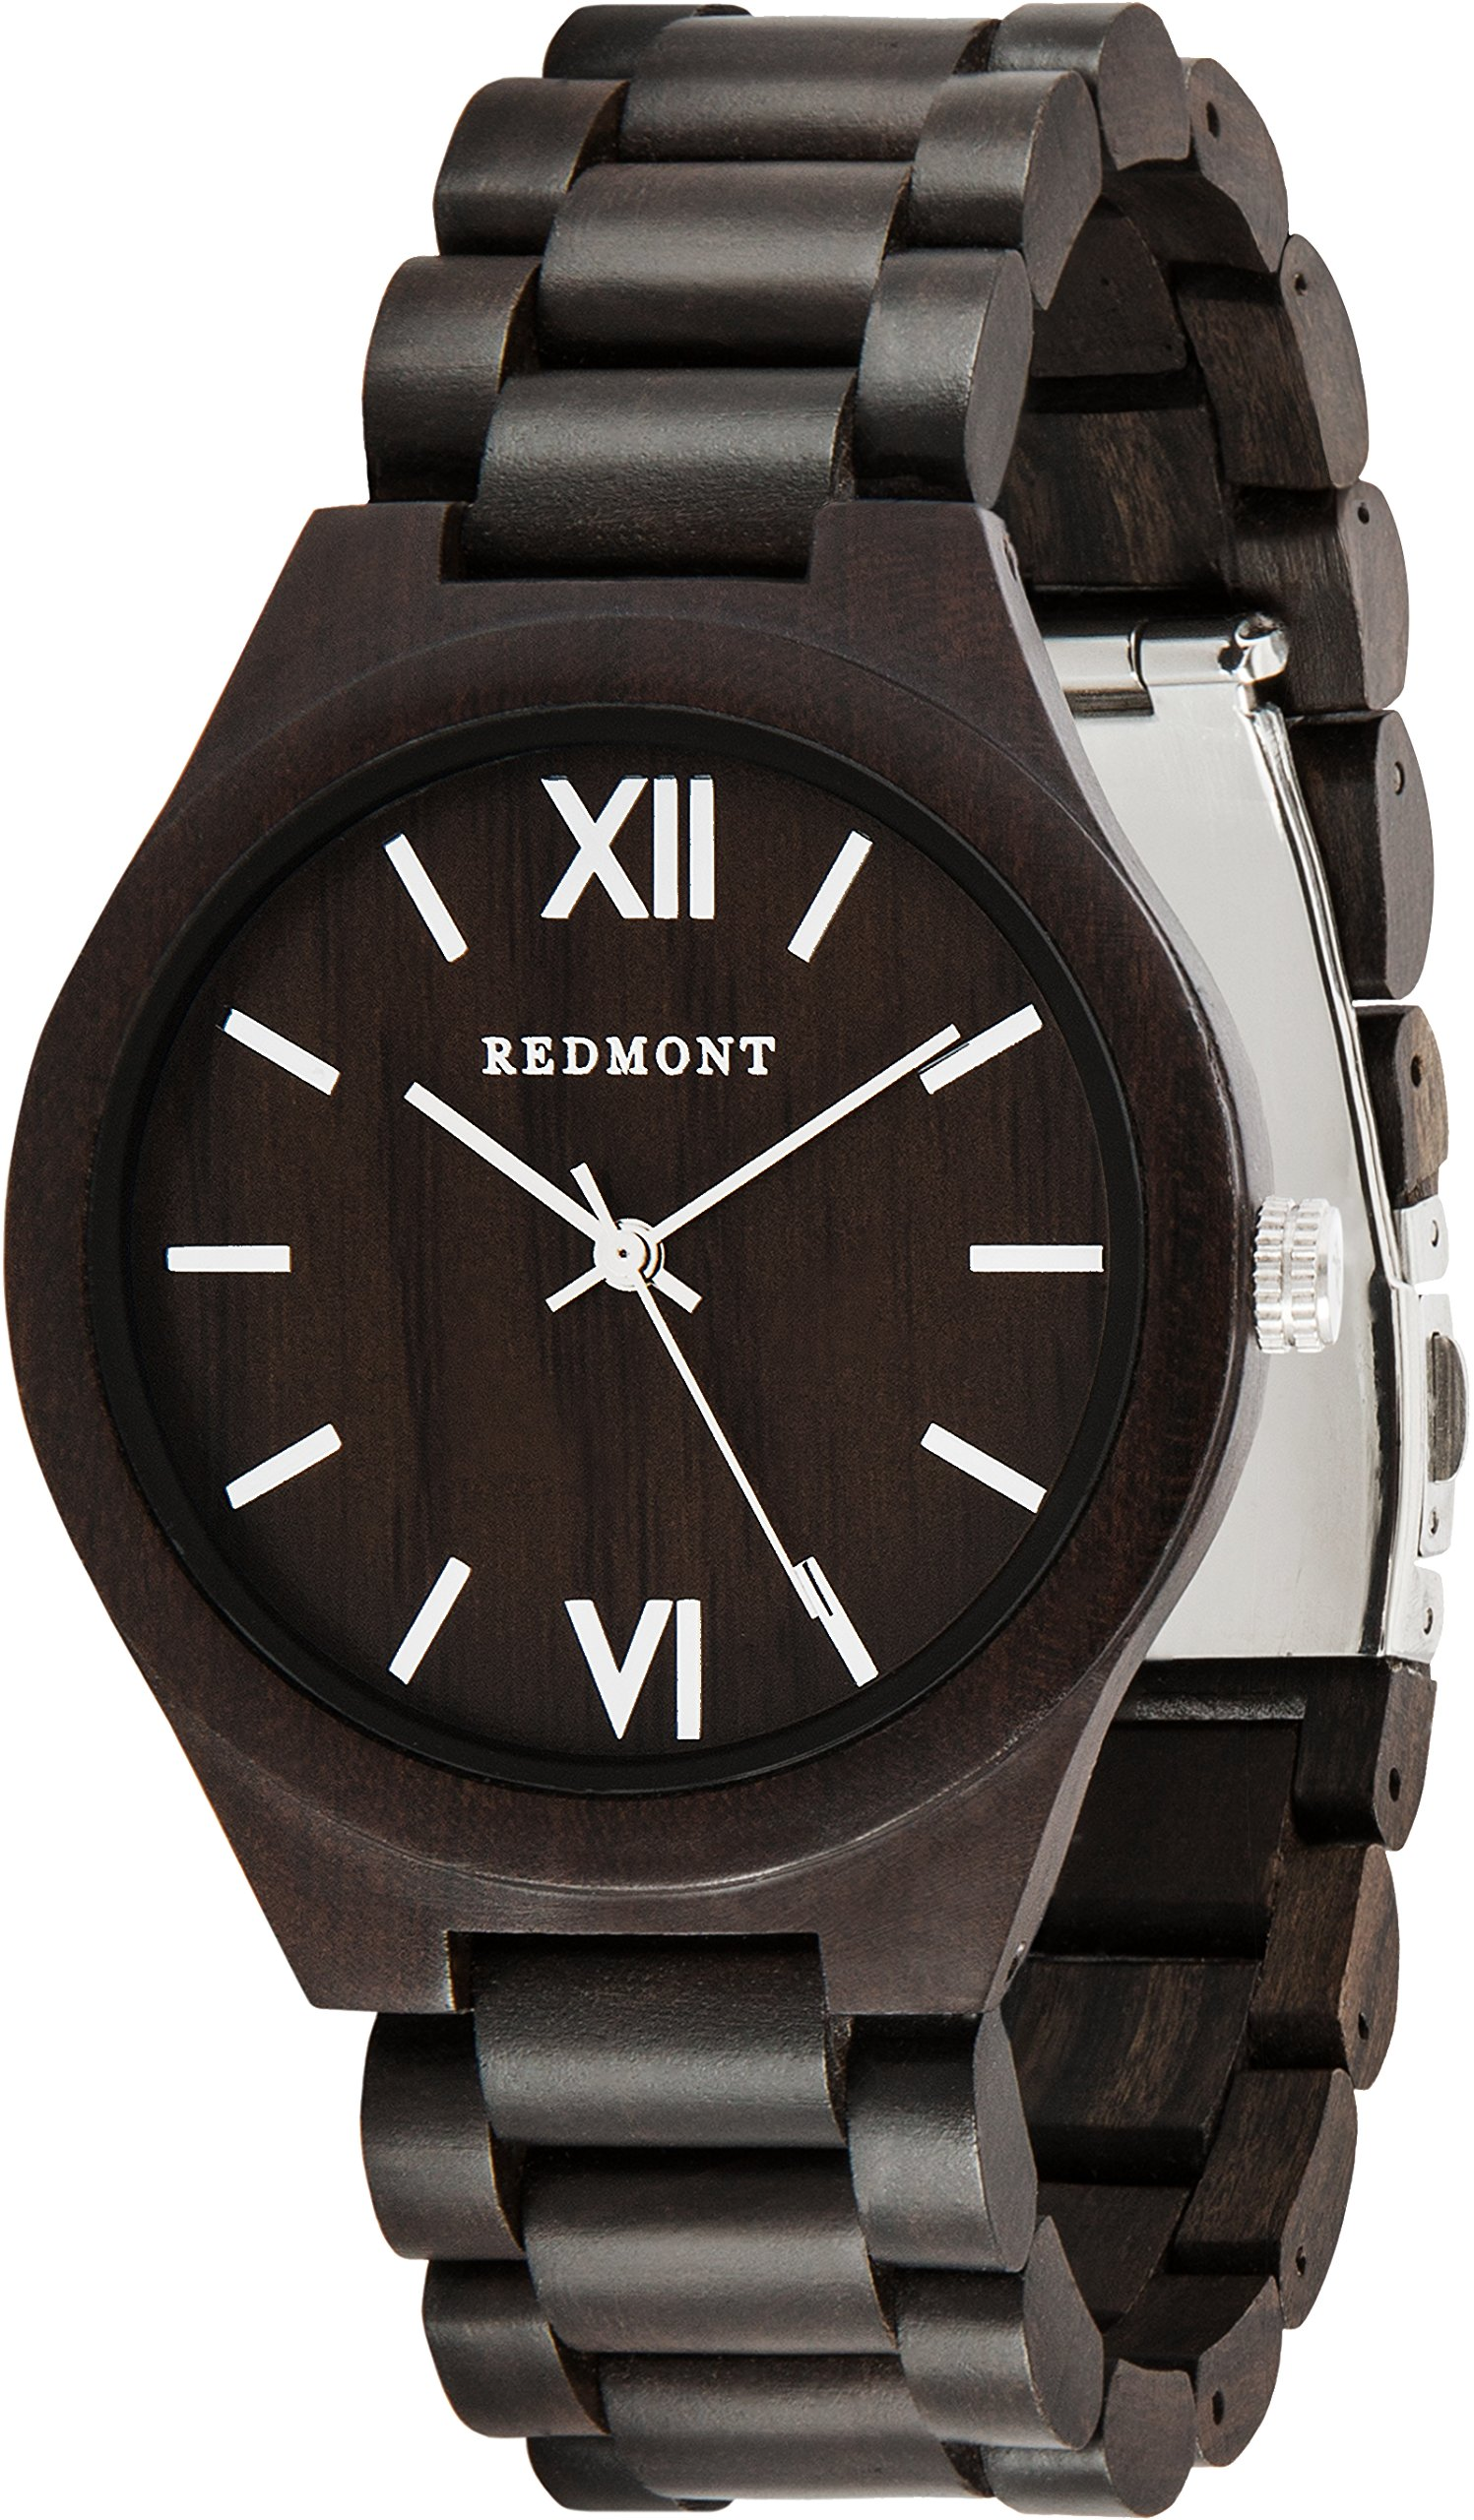 REDMONT-Classic-Collection-Herren-Uhr-mit-Holzarmband-Analog-Quarz